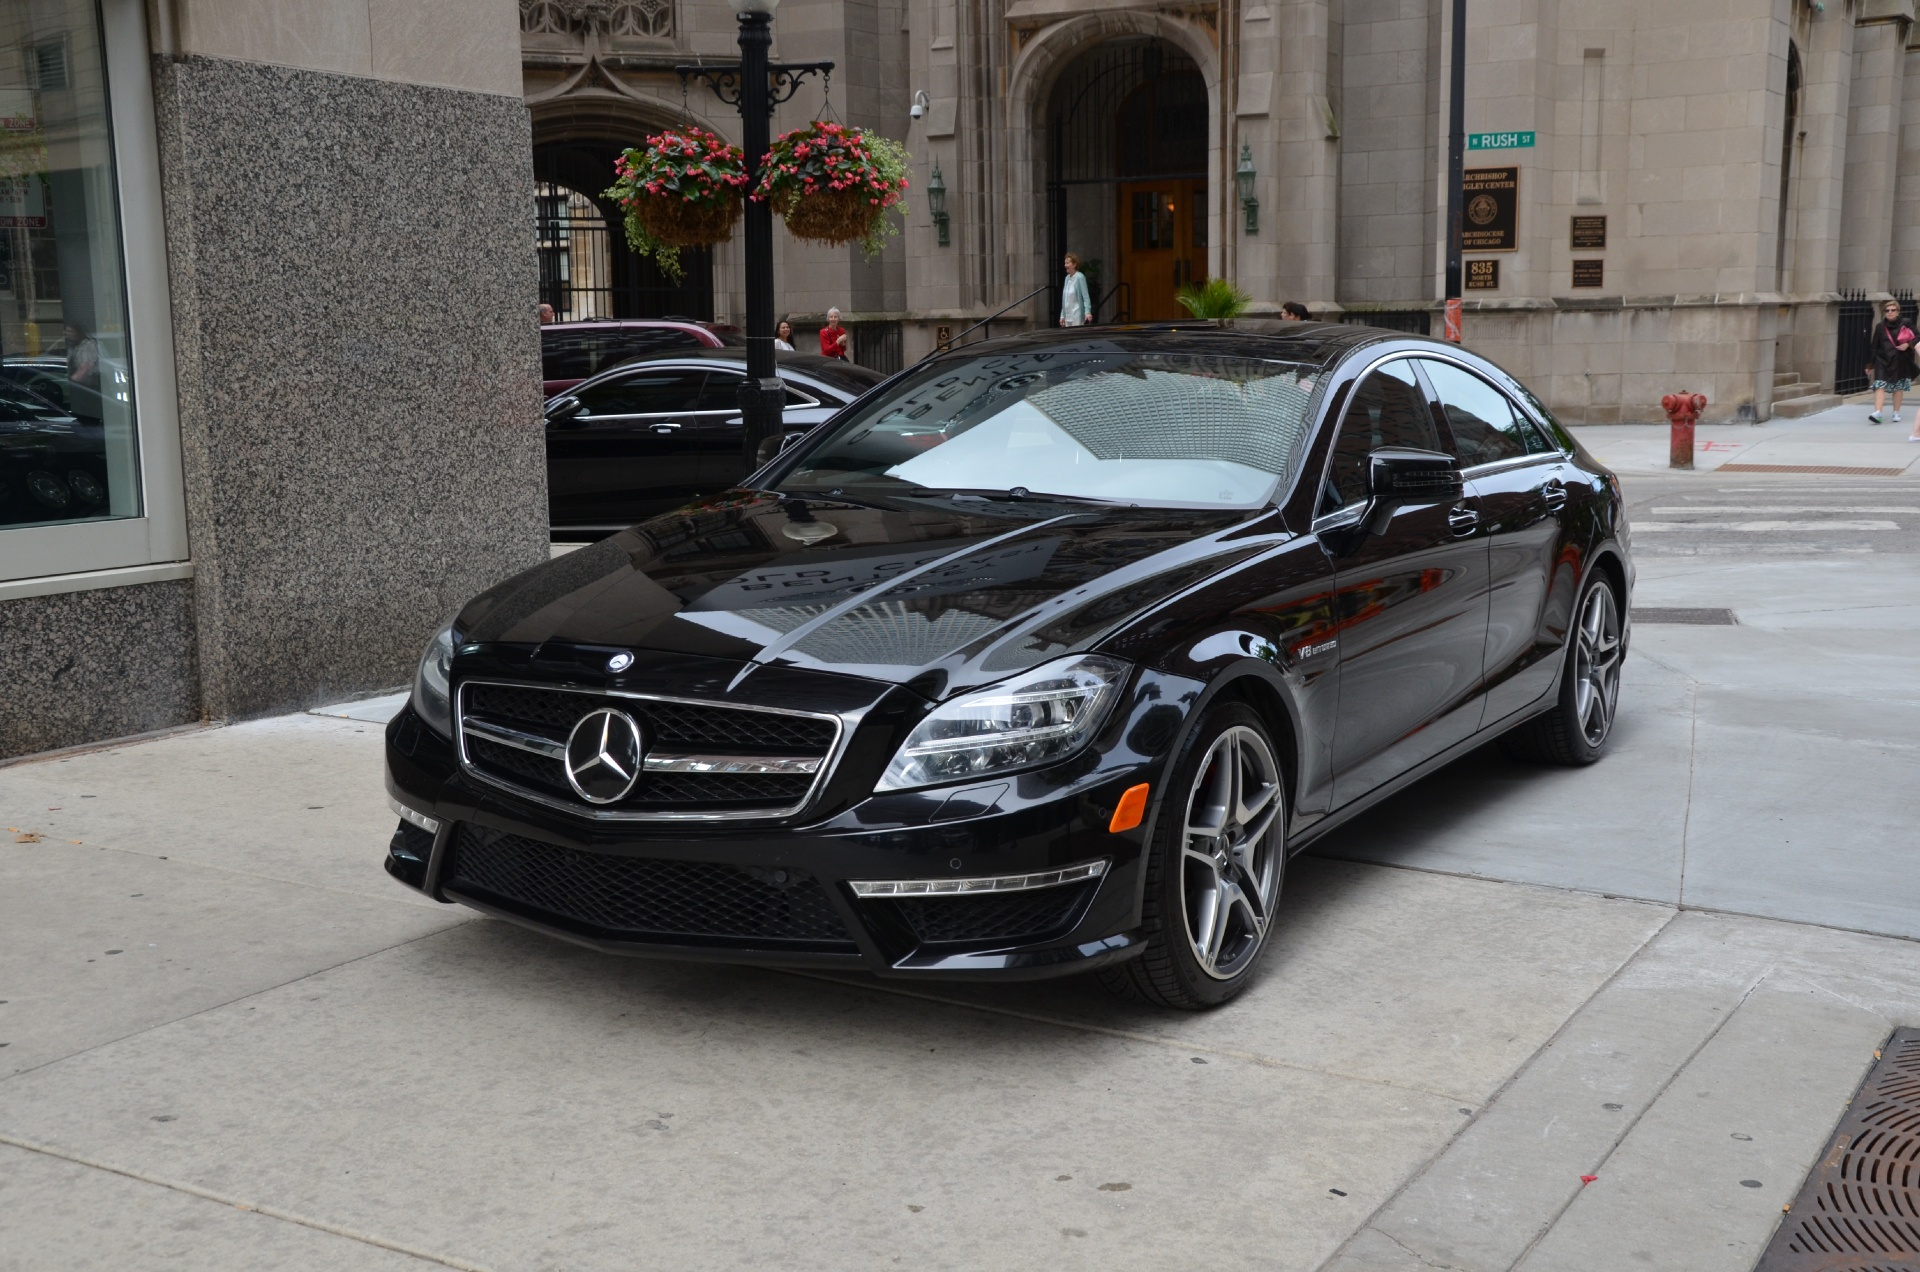 2013 mercedes benz cls class cls63 amg stock gc1718 for for Chicagoland mercedes benz dealers